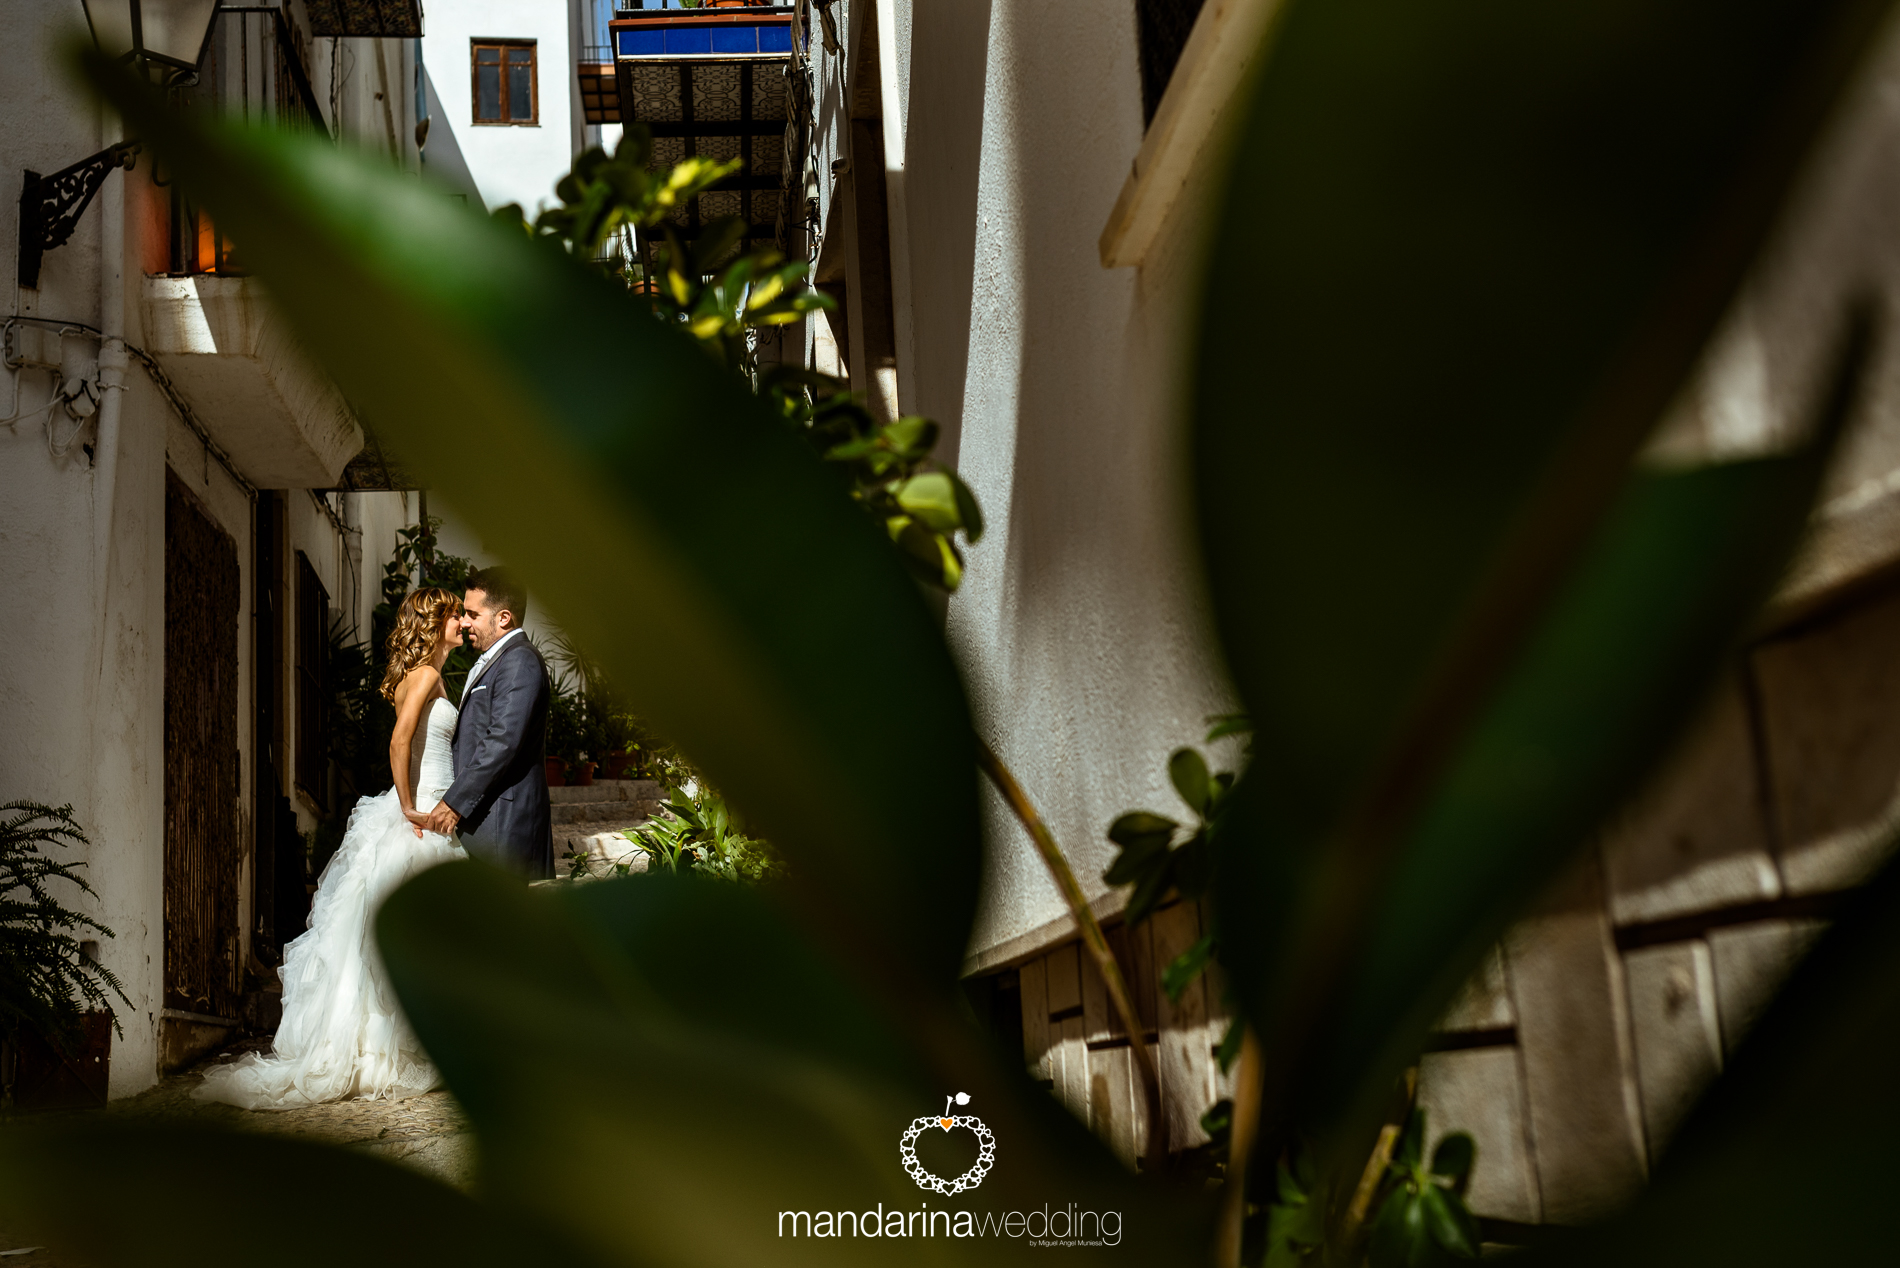 mandarina wedding_08